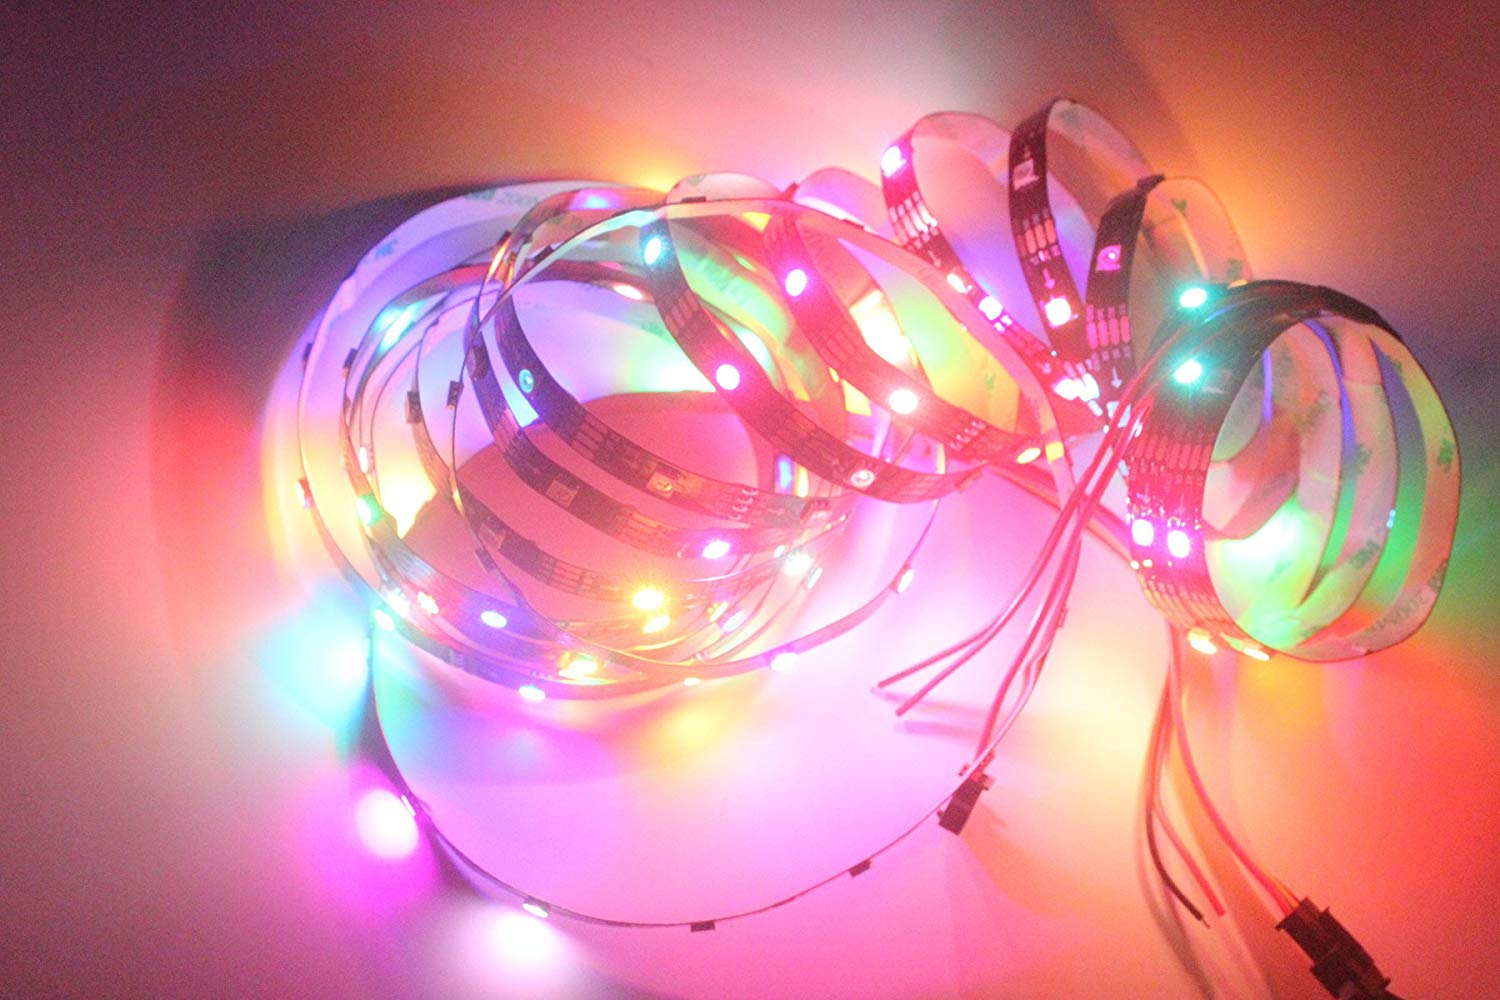 INVOLT WS2813 (WS2812B-upgrading) Individually Addressable LED Strip 30 LED/M 150 Pixel 16.4ft 5V, RGB Programmable Dream Color Chasing Light, Non-Waterproof Black PCB (with Dual Data Signal Wires)